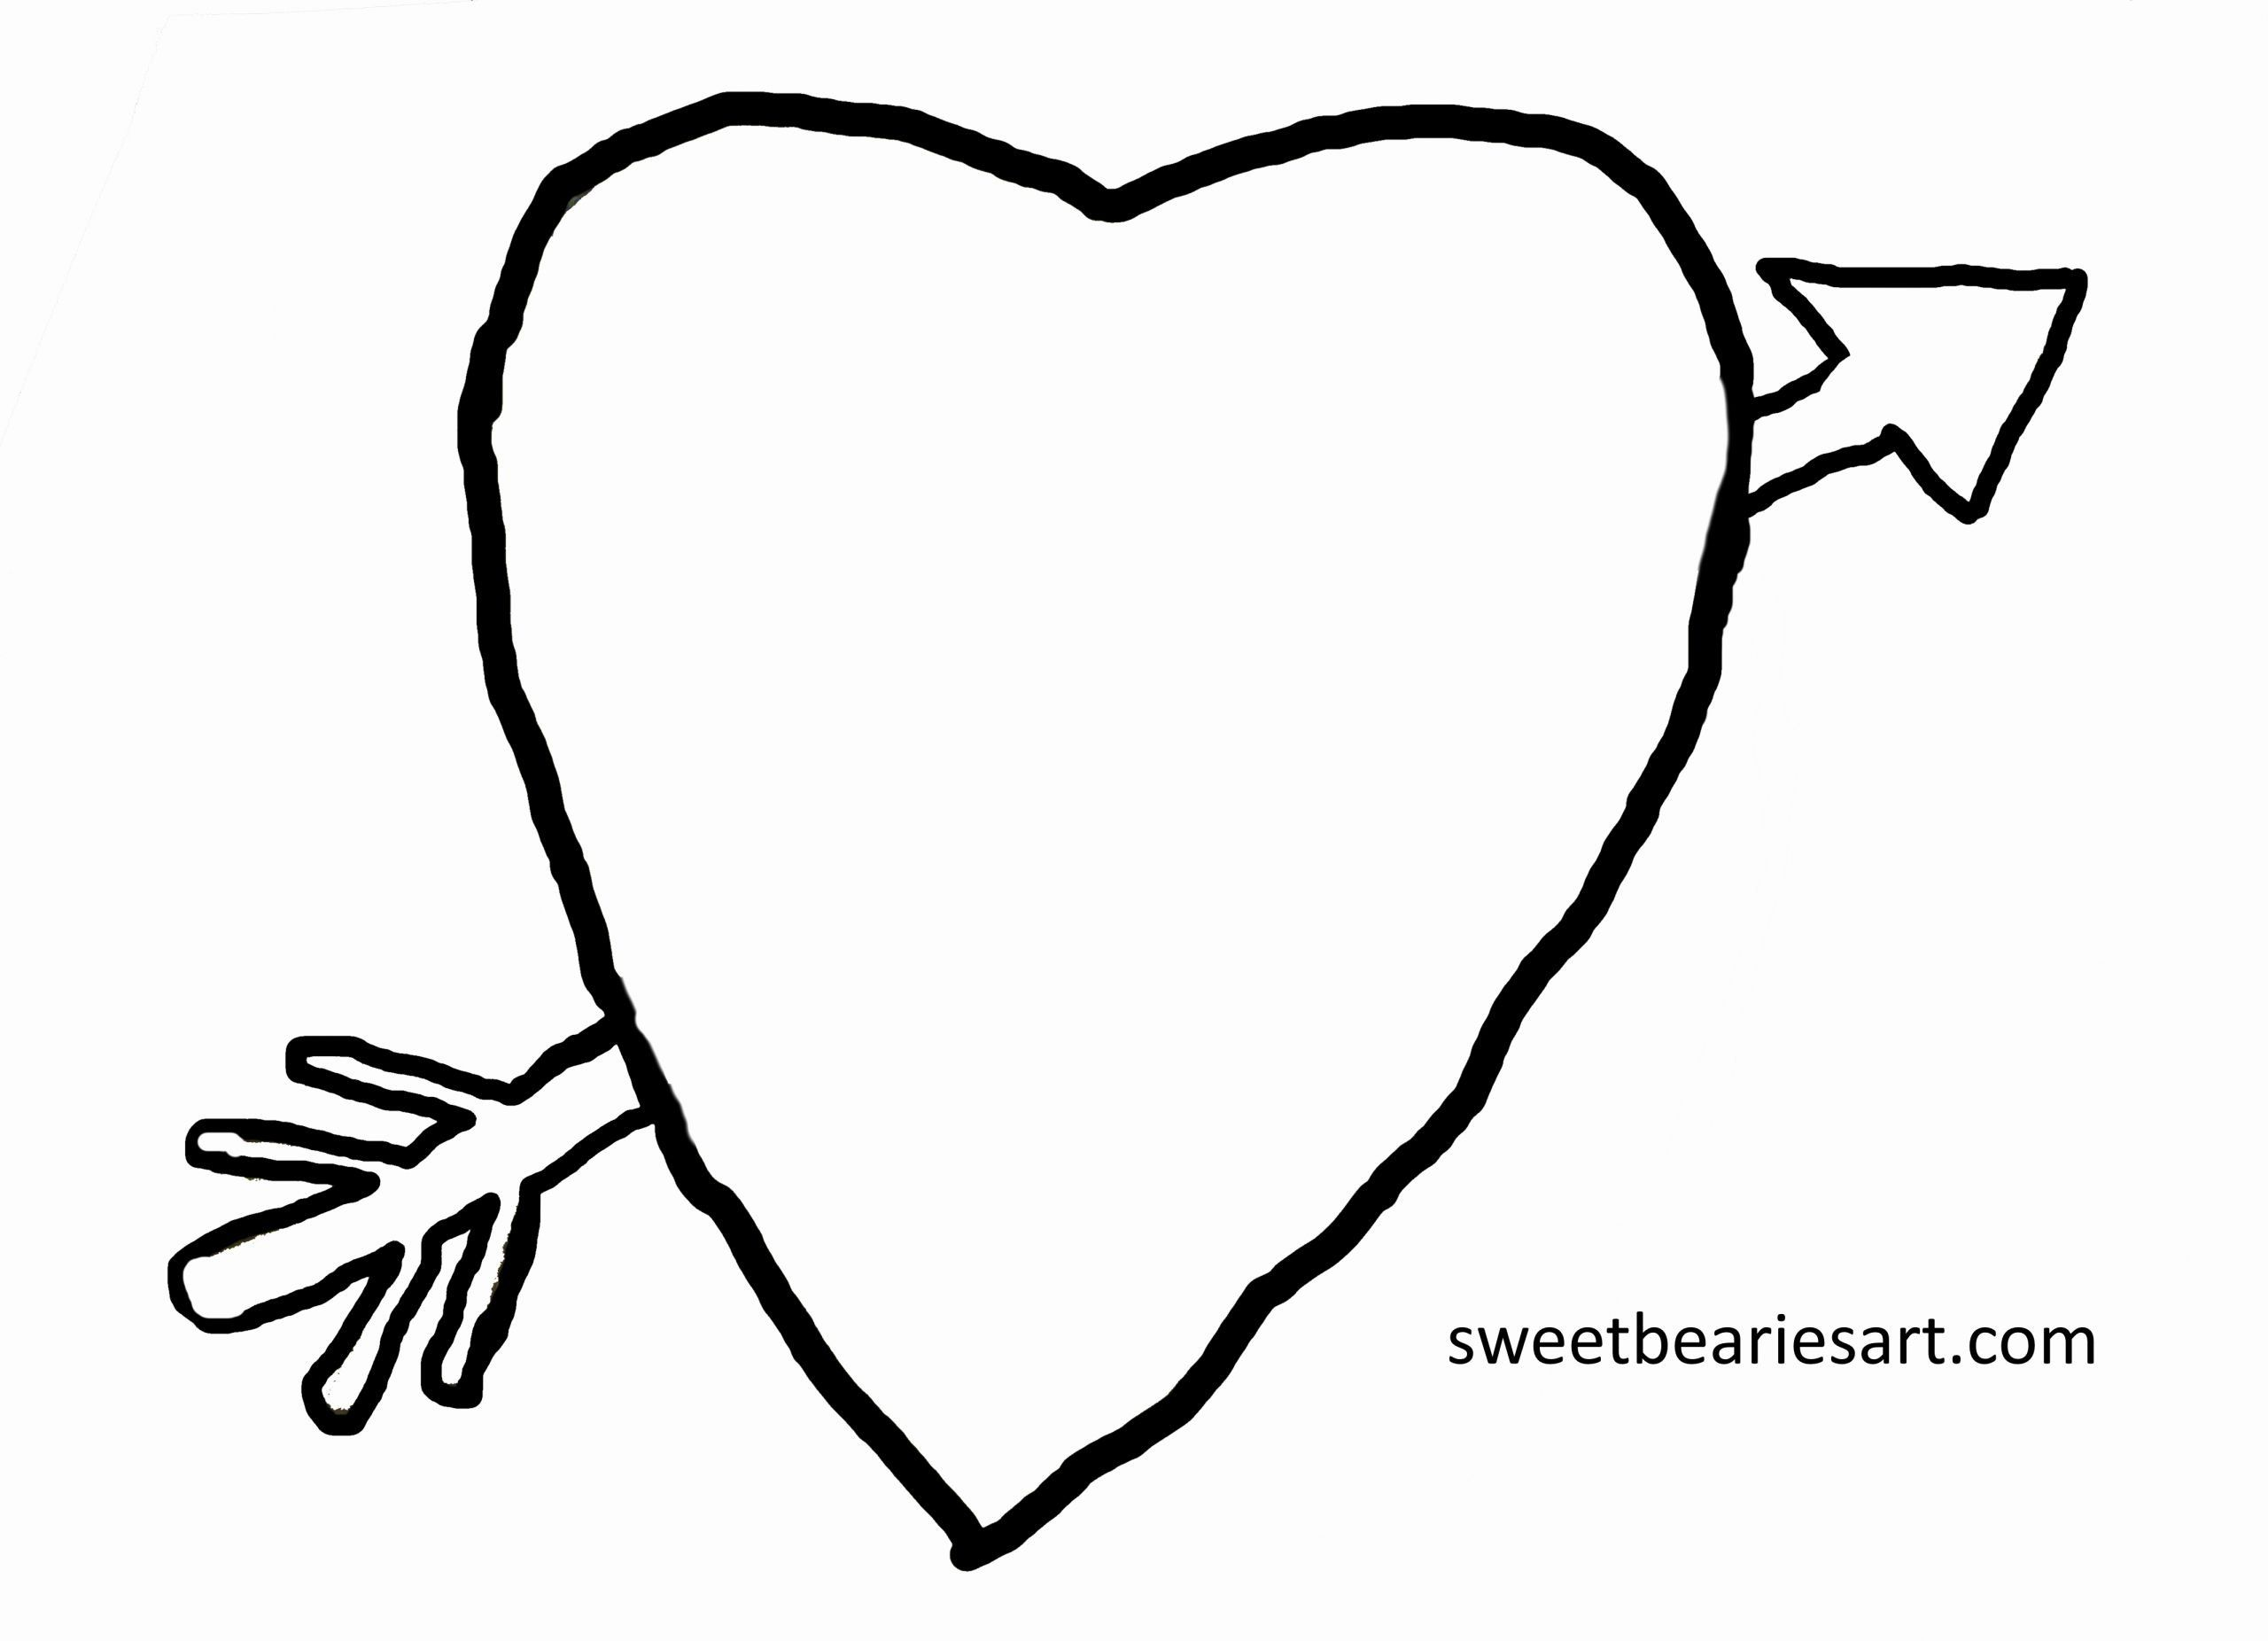 Hearts With Arrows Coloring Pages Inspirational Heart And Arrow Coloring Page Sweetbearies Art Tips Heart With Arrow Coloring Pages Heart Coloring Pages